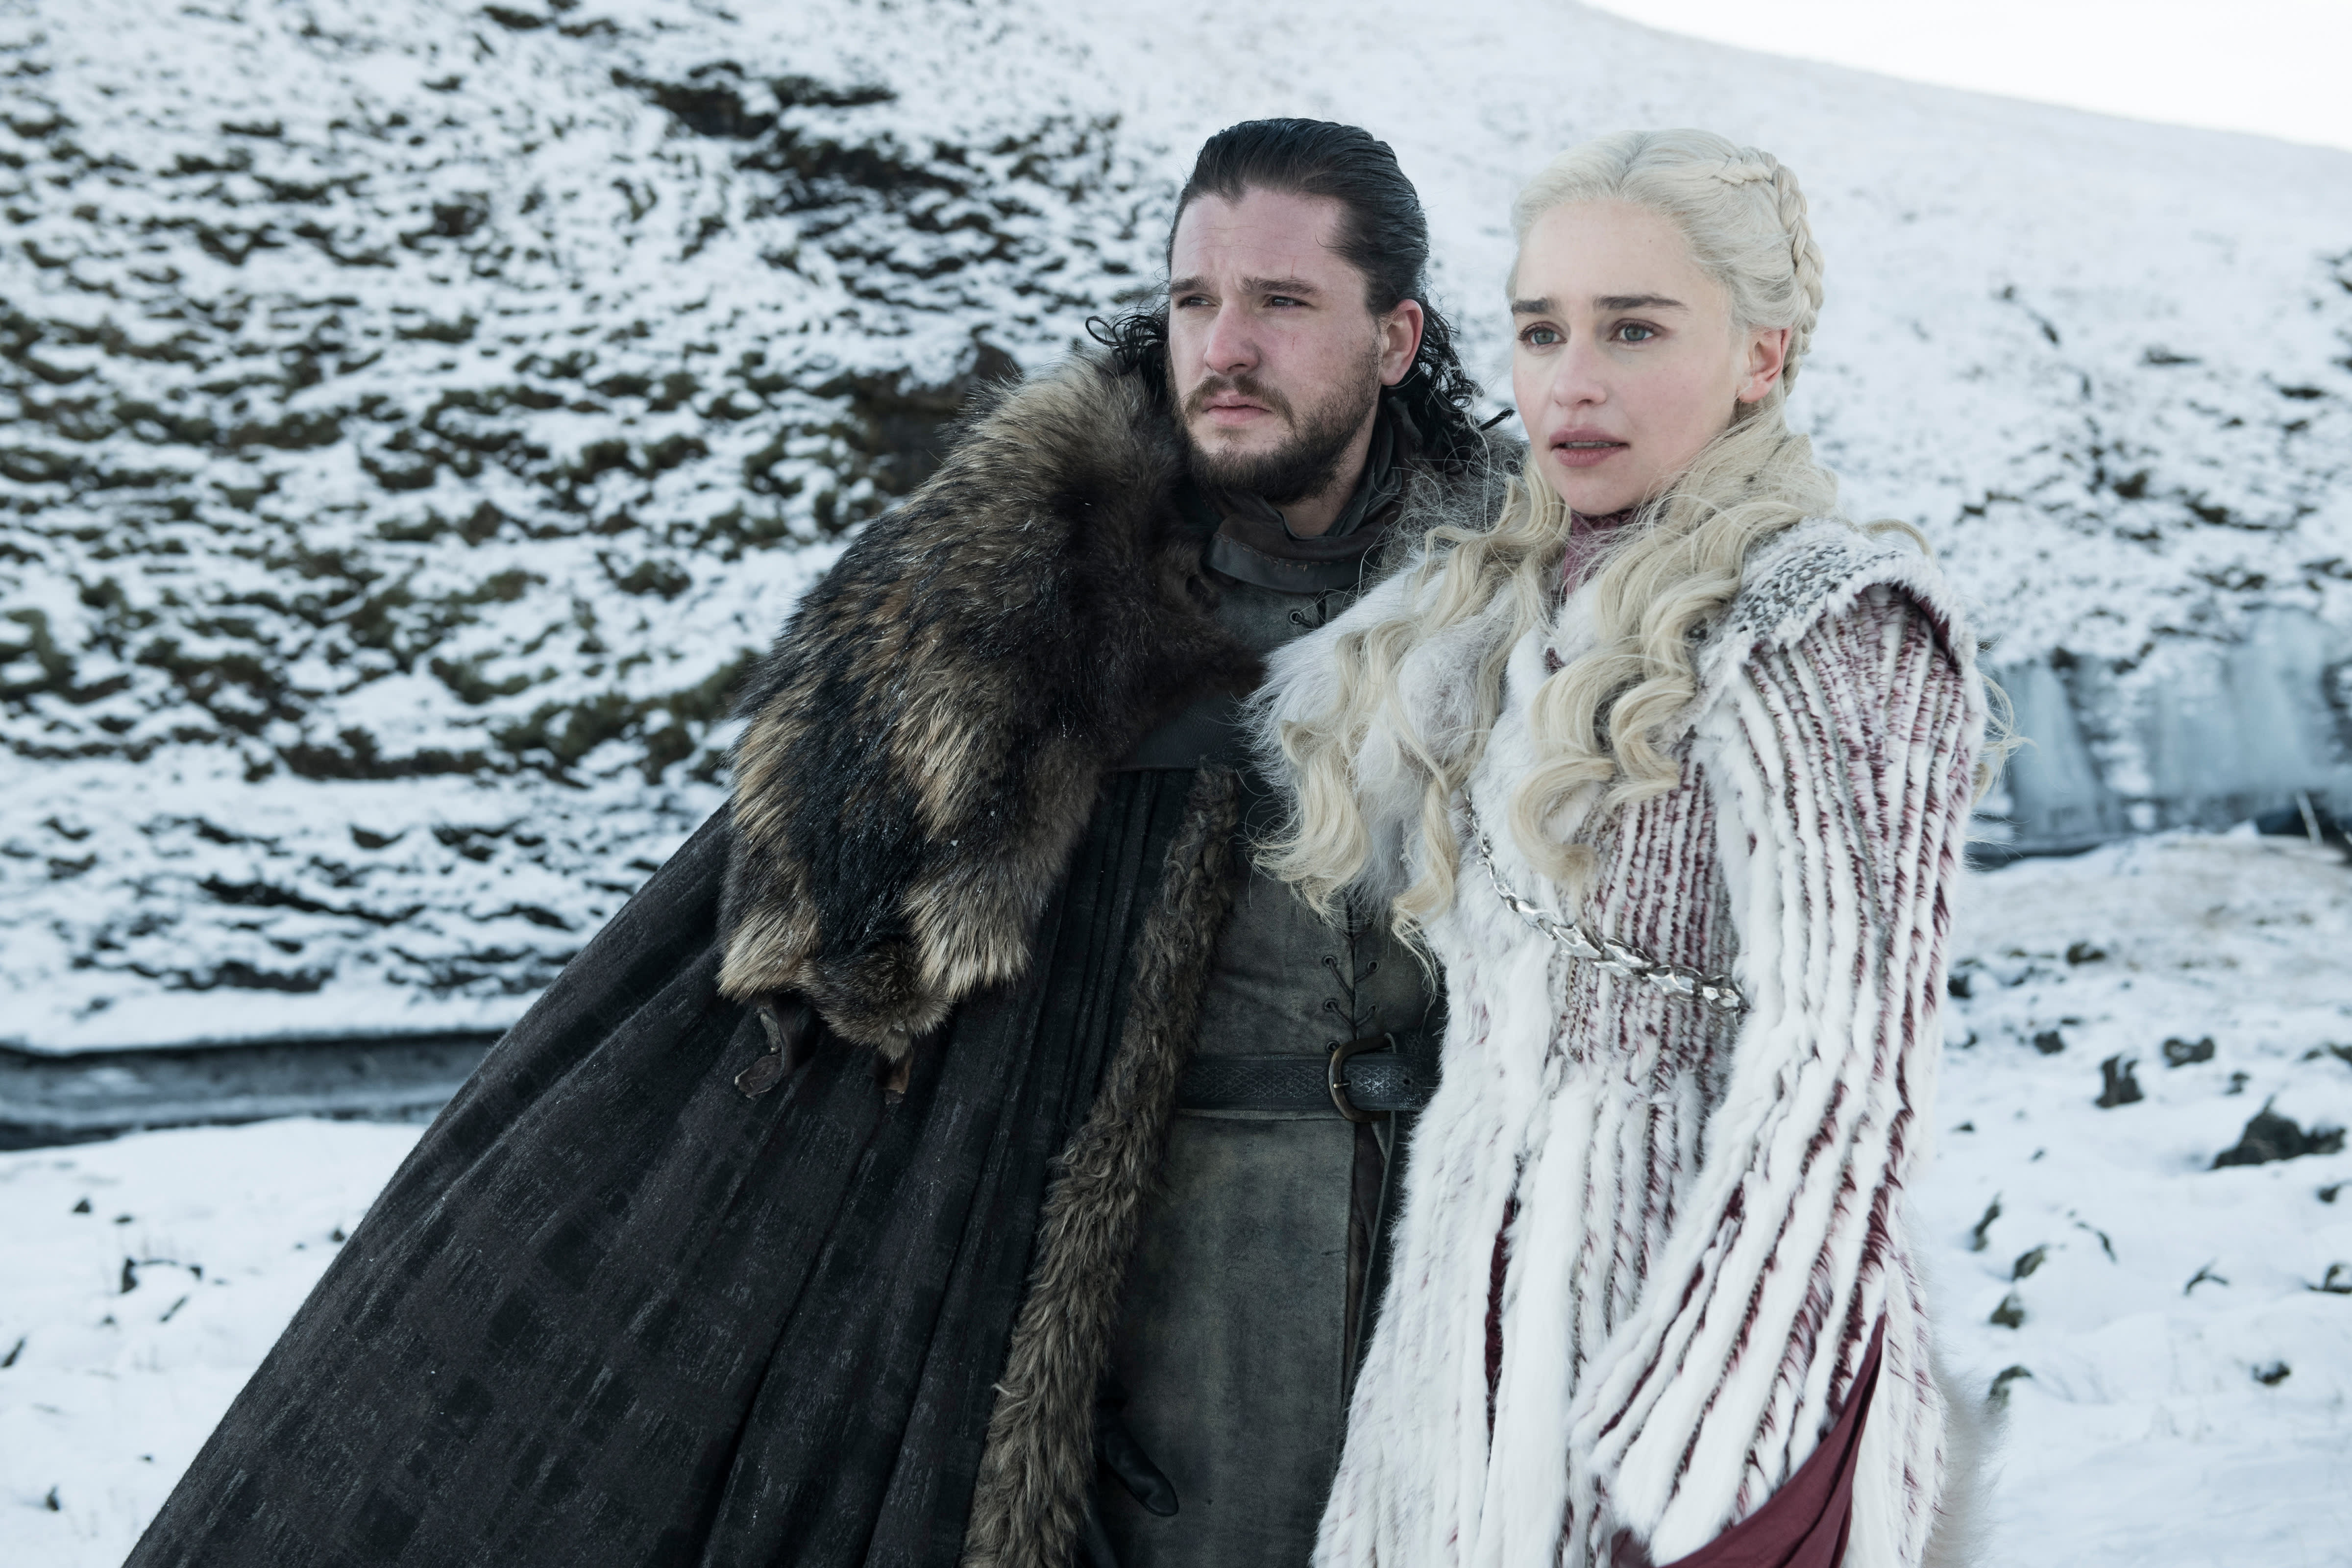 'Game of Thrones' nabs record 32 Emmy Award nominations, including best drama series, in final season